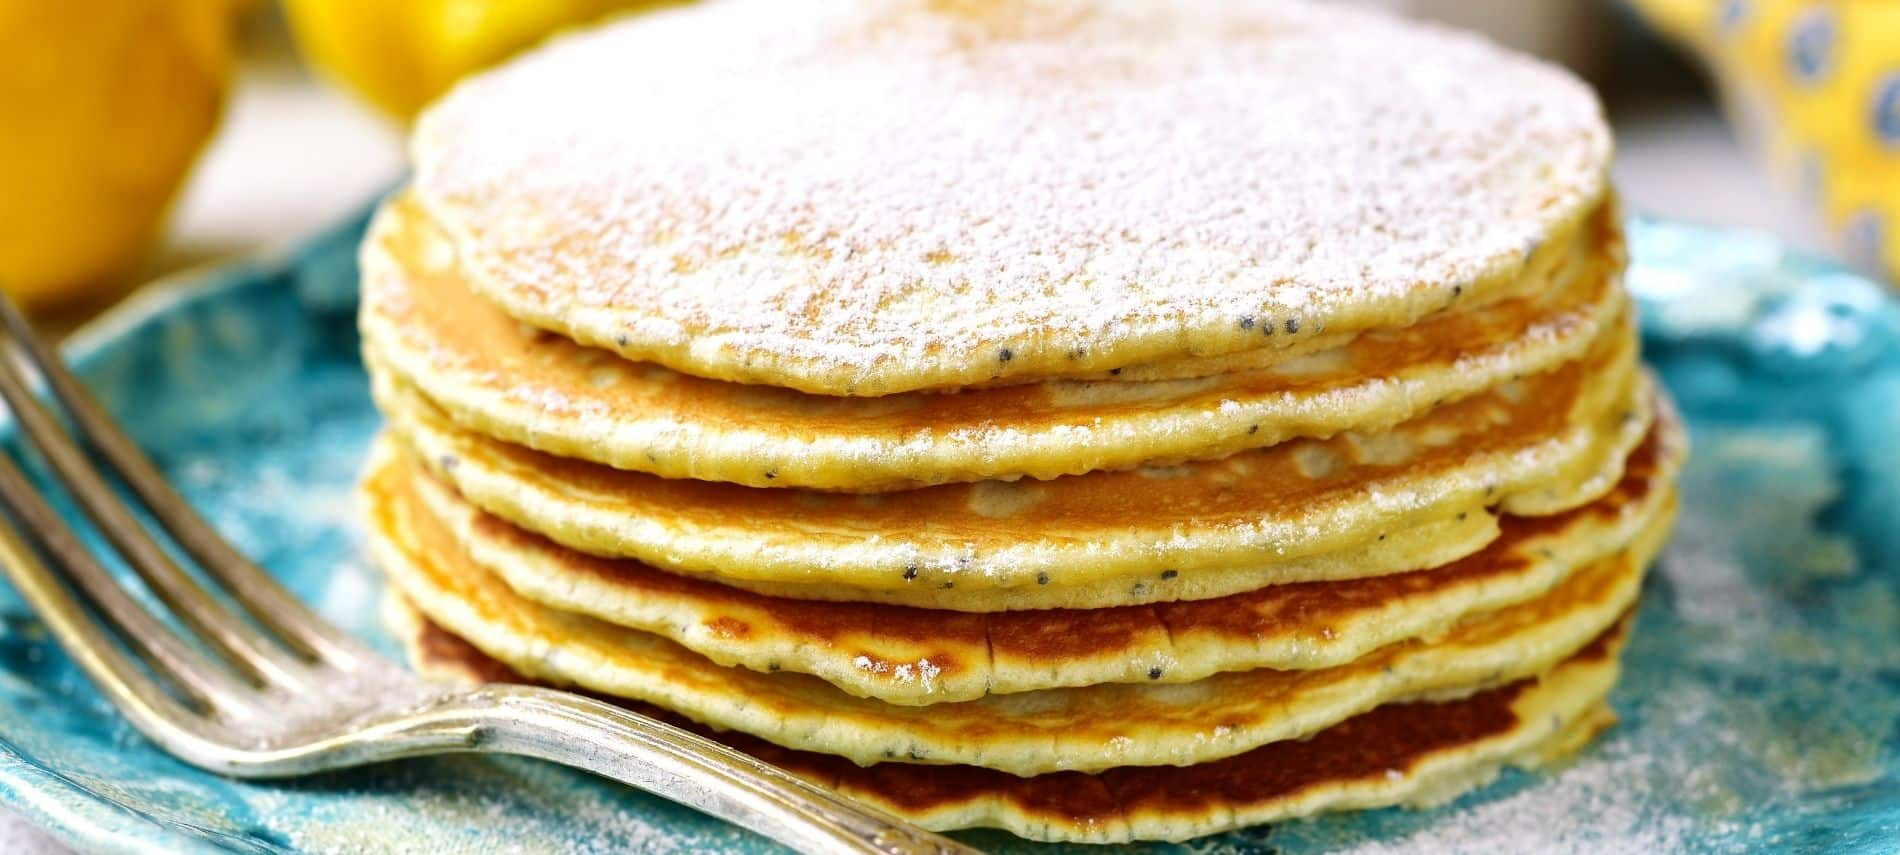 Blue plate topped with a stack of lemon pancakes dusted with powdered sugar